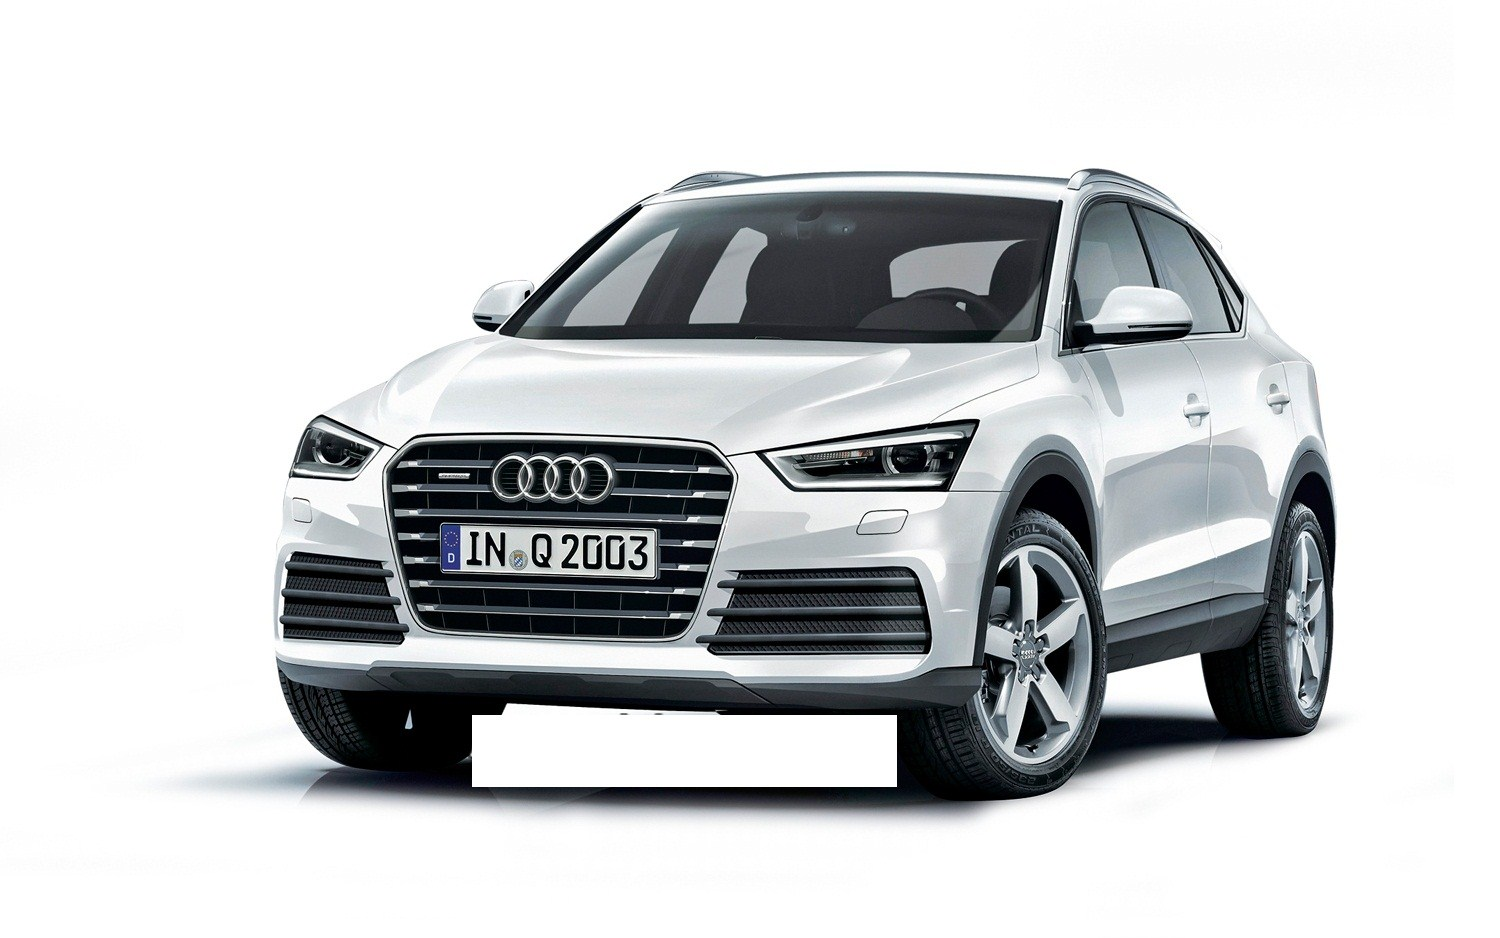 2014 audi q2 car 10 hd wallpaper prices review. Black Bedroom Furniture Sets. Home Design Ideas